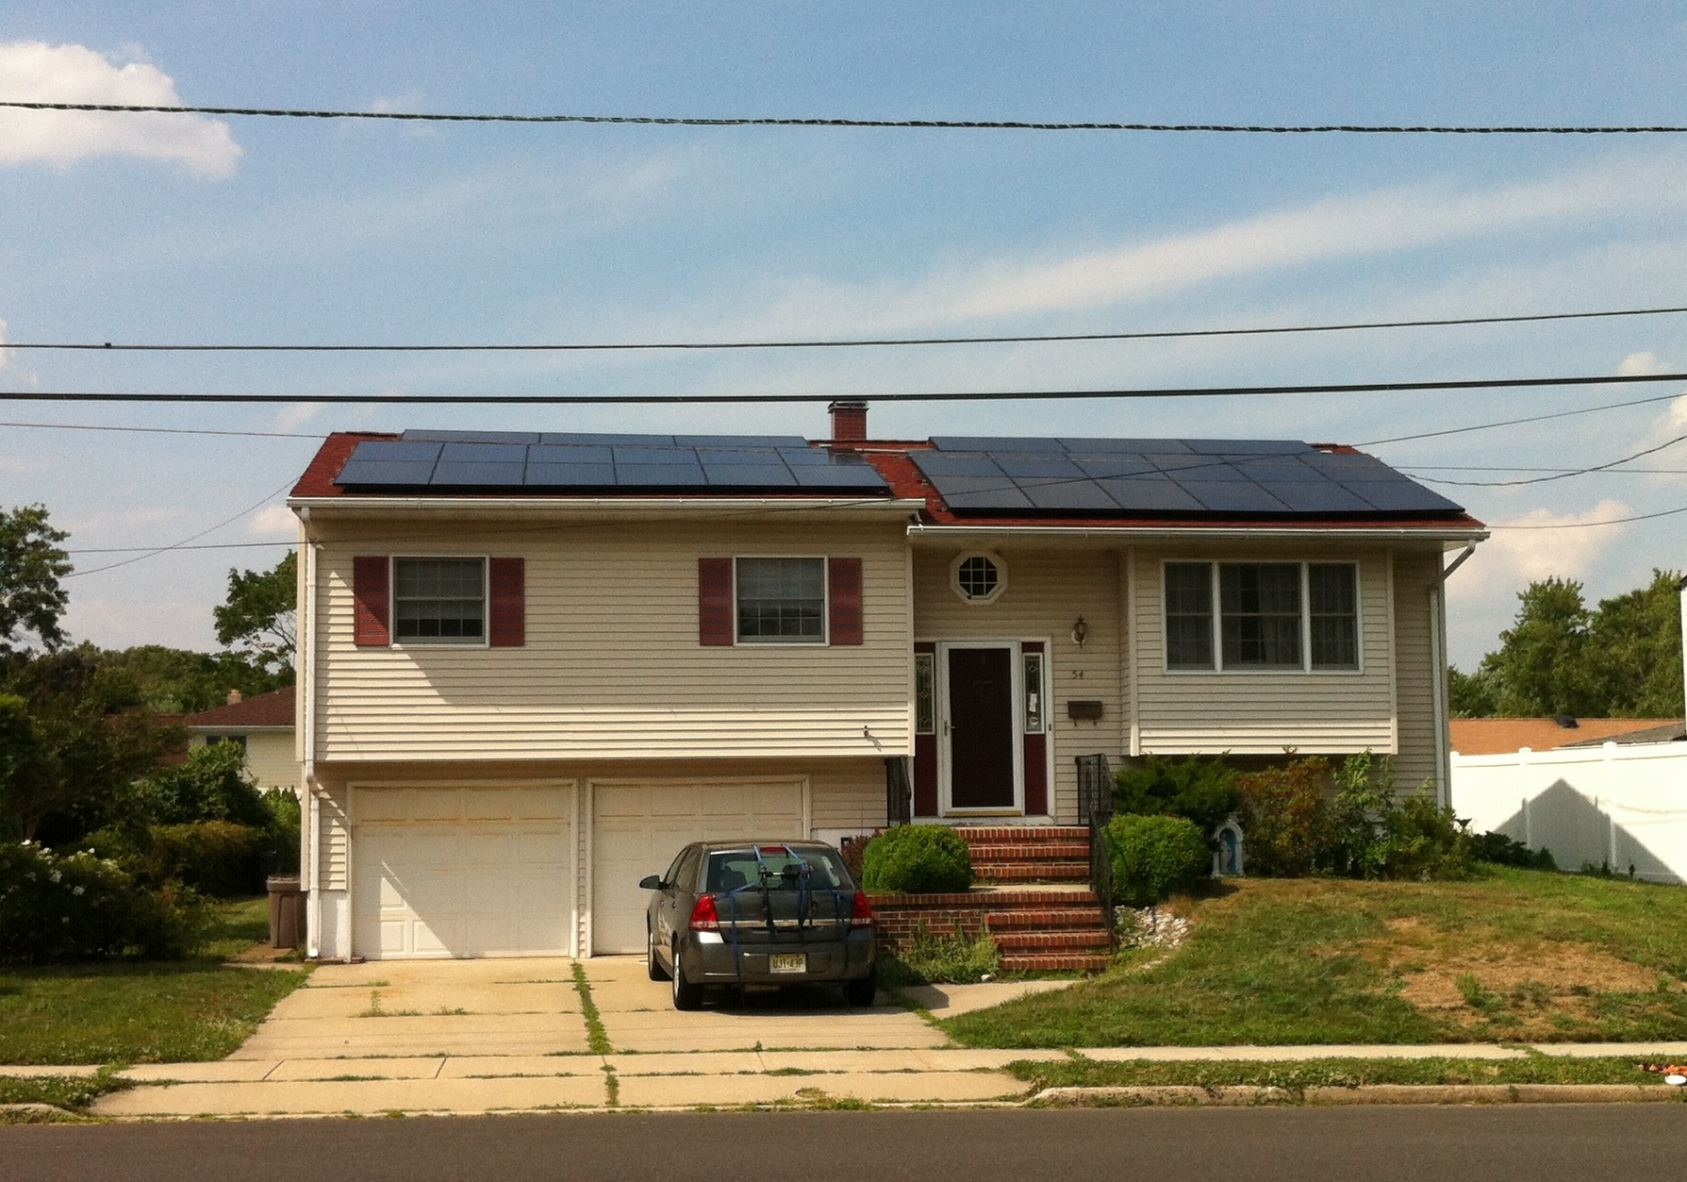 More roof-mounted solar PV installed by Exact Solar